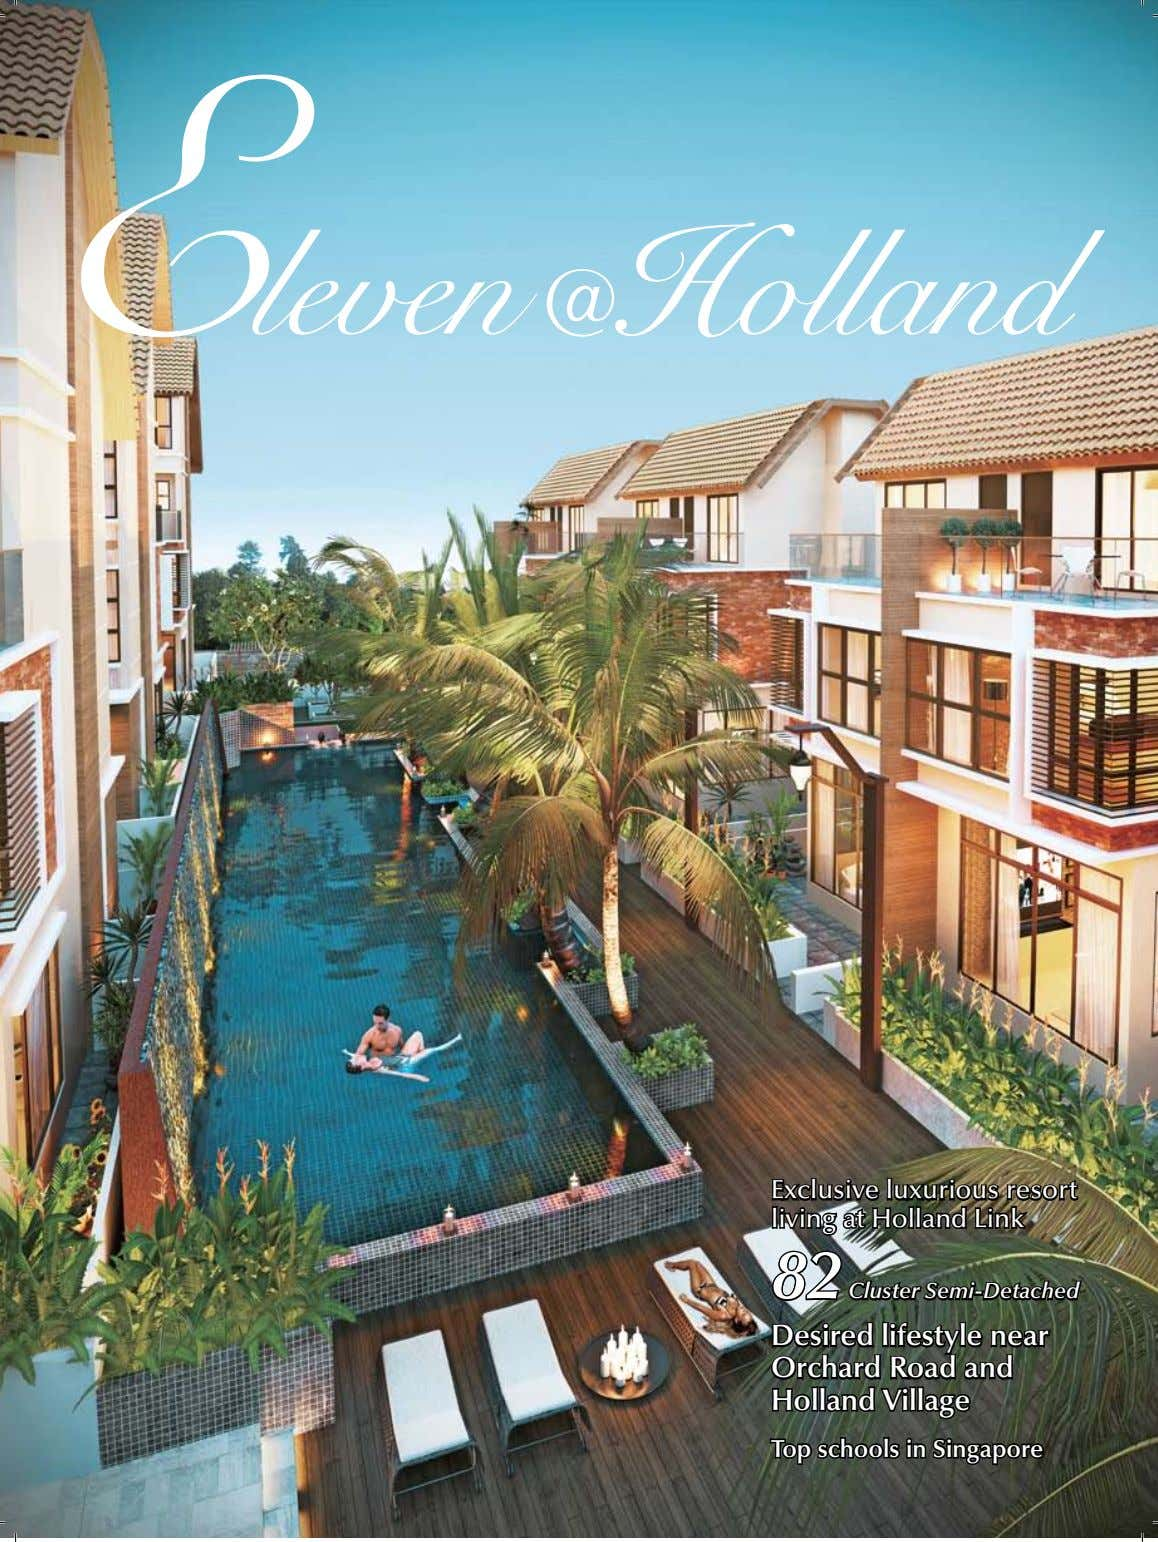 Exclusive luxurious resort Exclusive luxurious resort Exclusive luxurious resort living at Holland Link living at